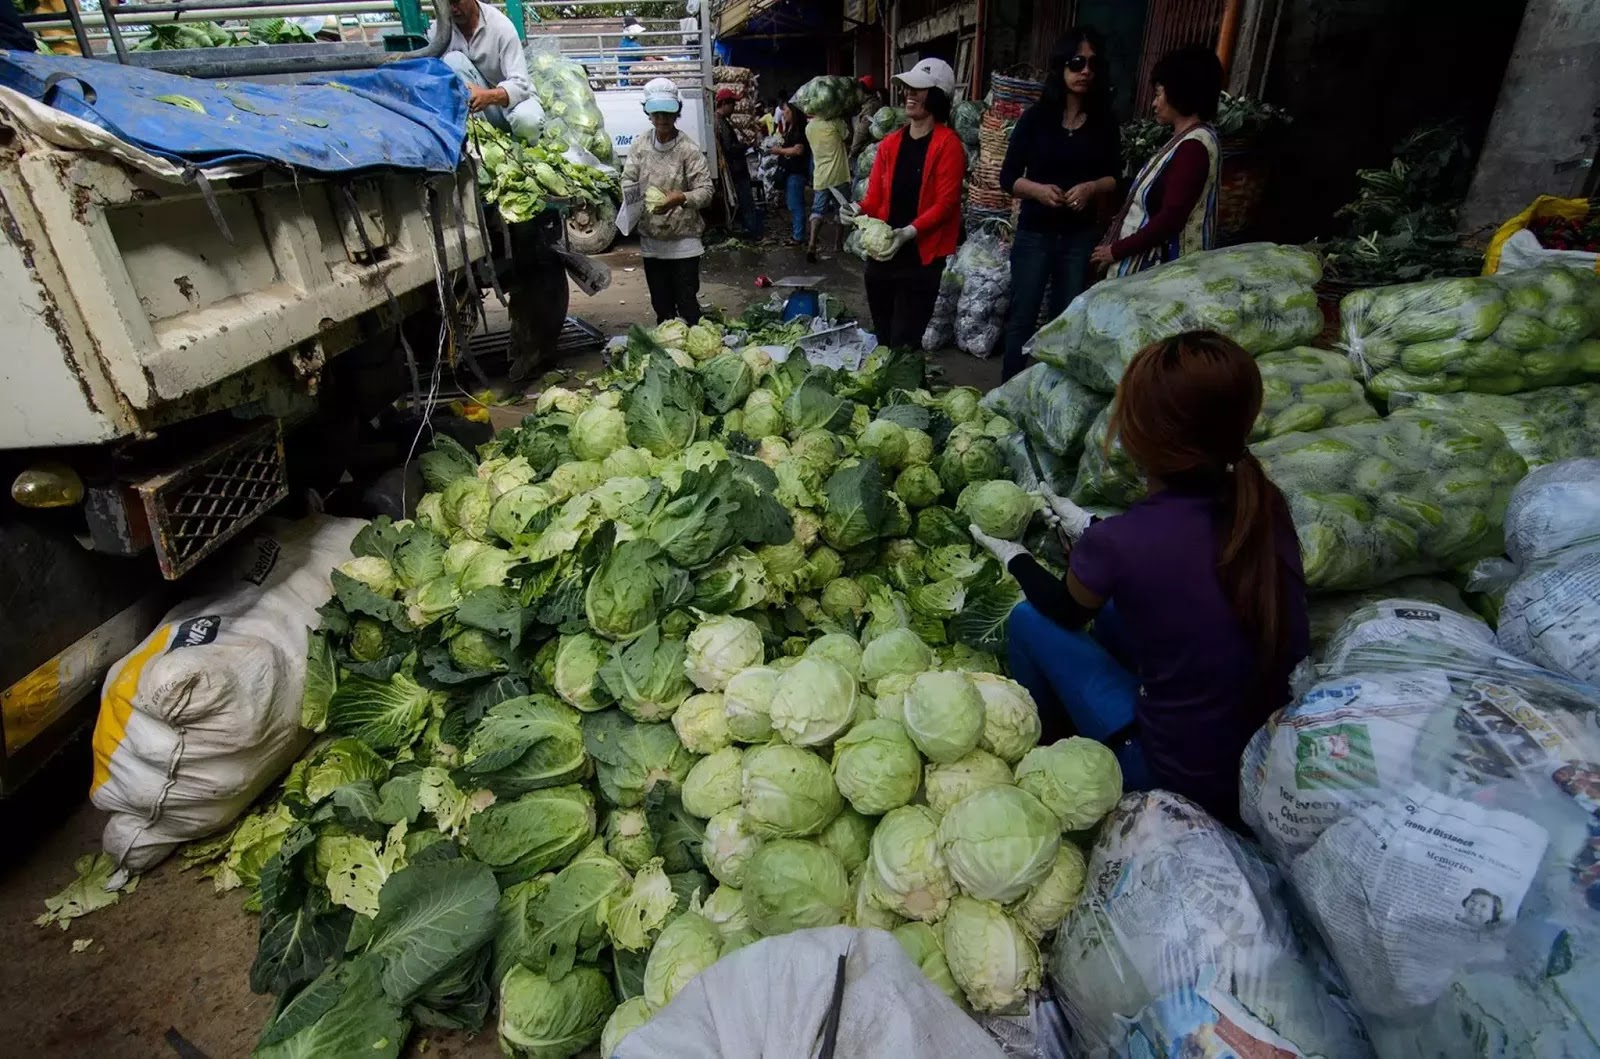 Fresh Vegetable Cleaner Trading Post La Trinidad Benguet Cordillera Administrative Region Philippines